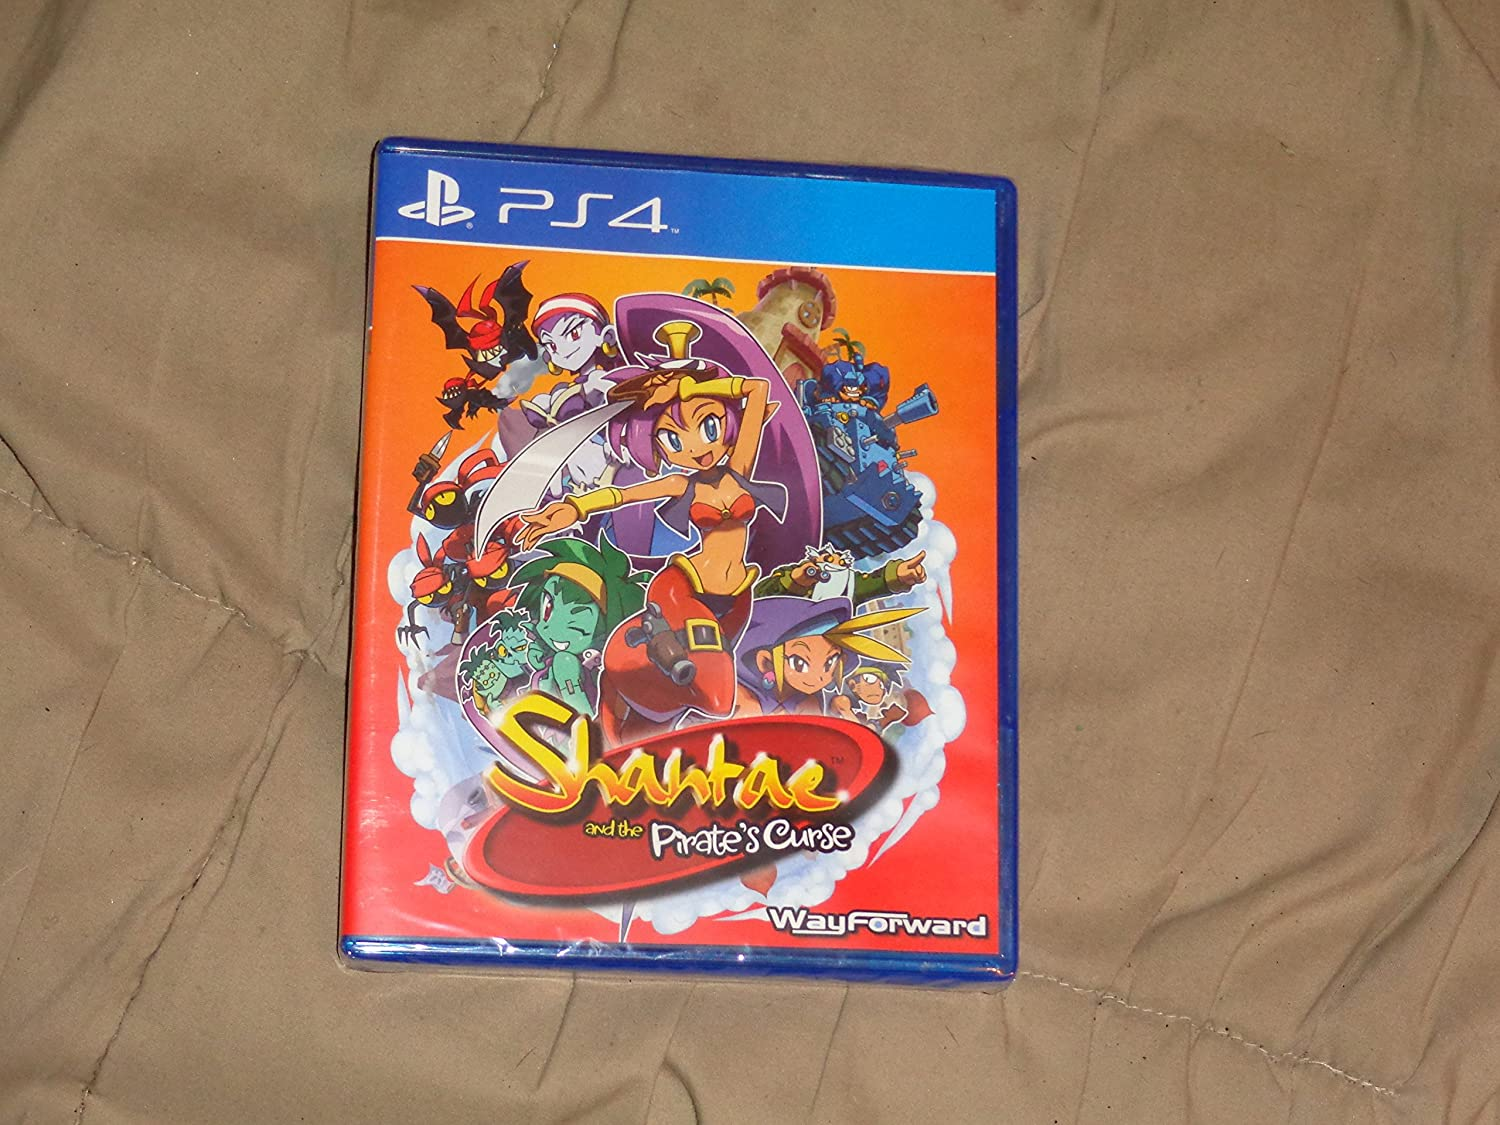 Amazoncom Shantae And The Pirates Curse Playstation 4 Video Games